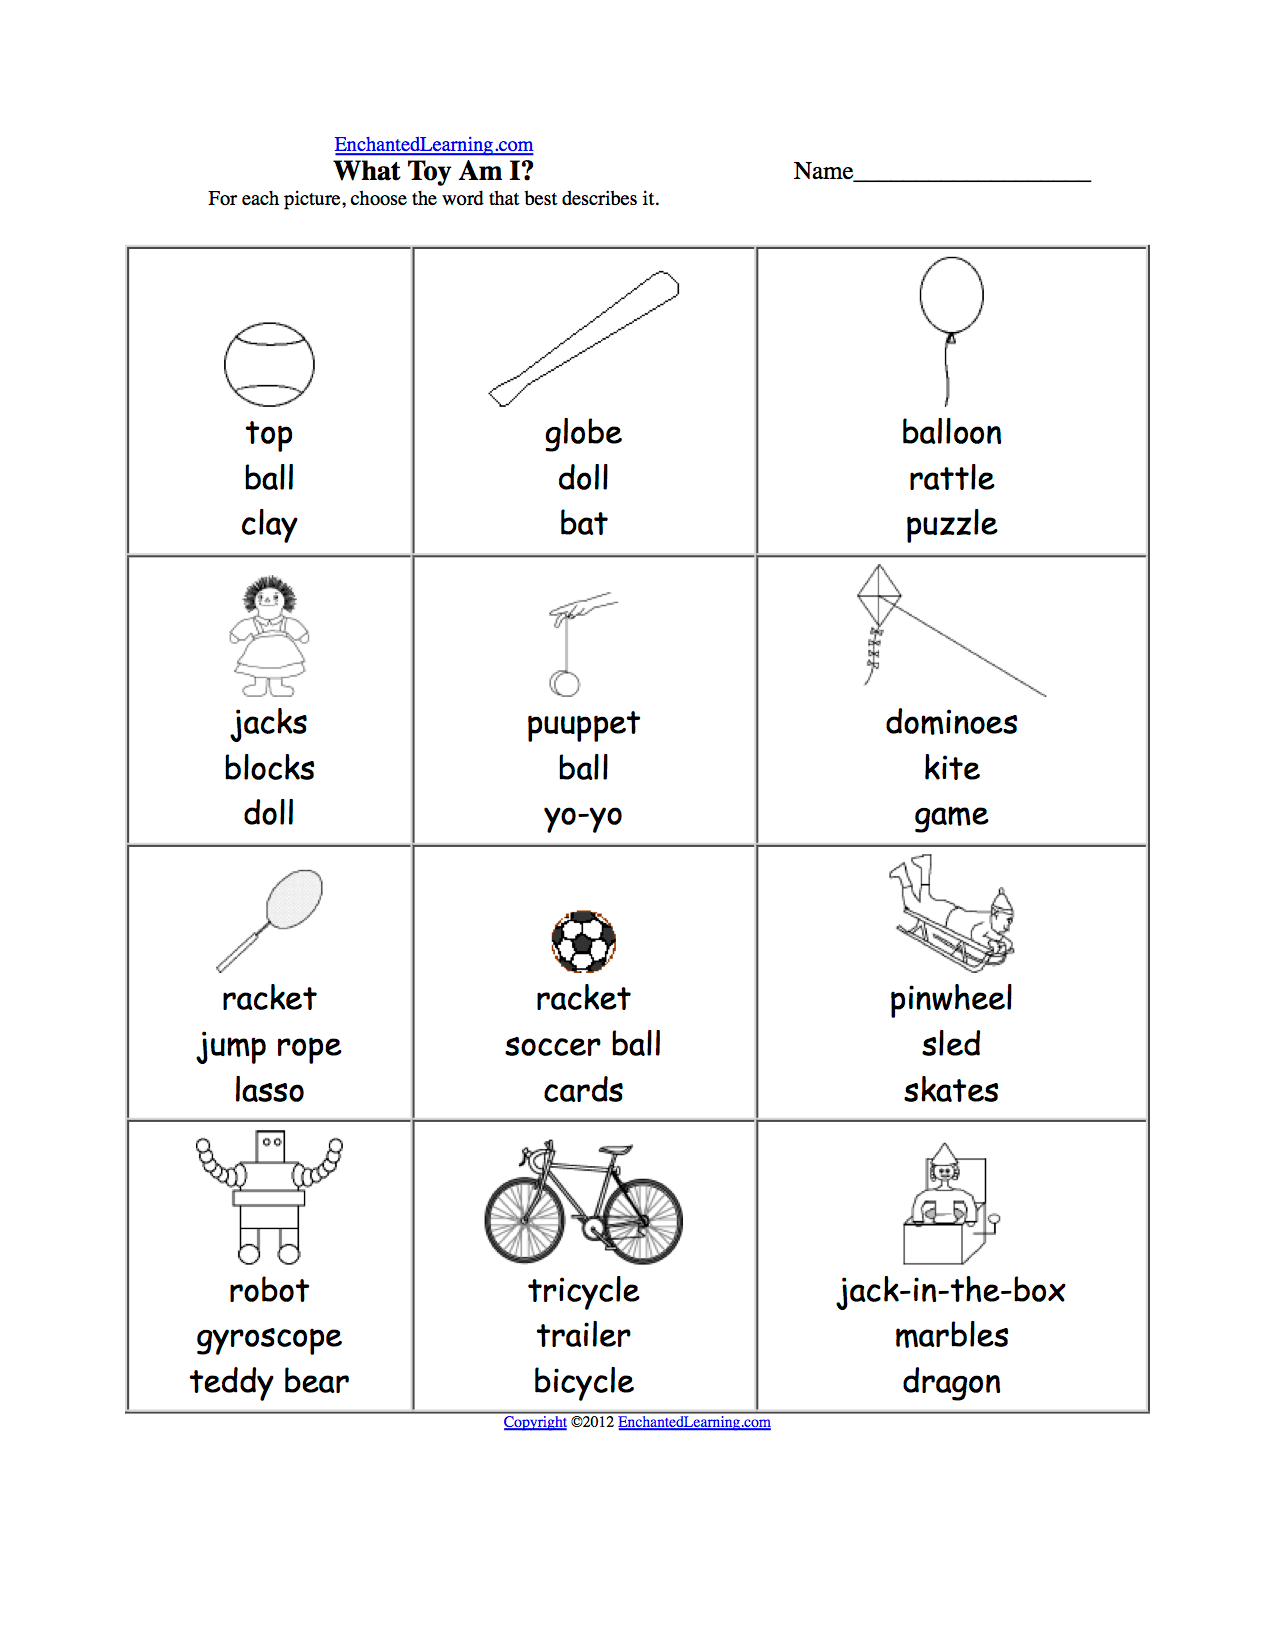 Miscellaneous Multiple Choice Spelling Words At Enchantedlearning